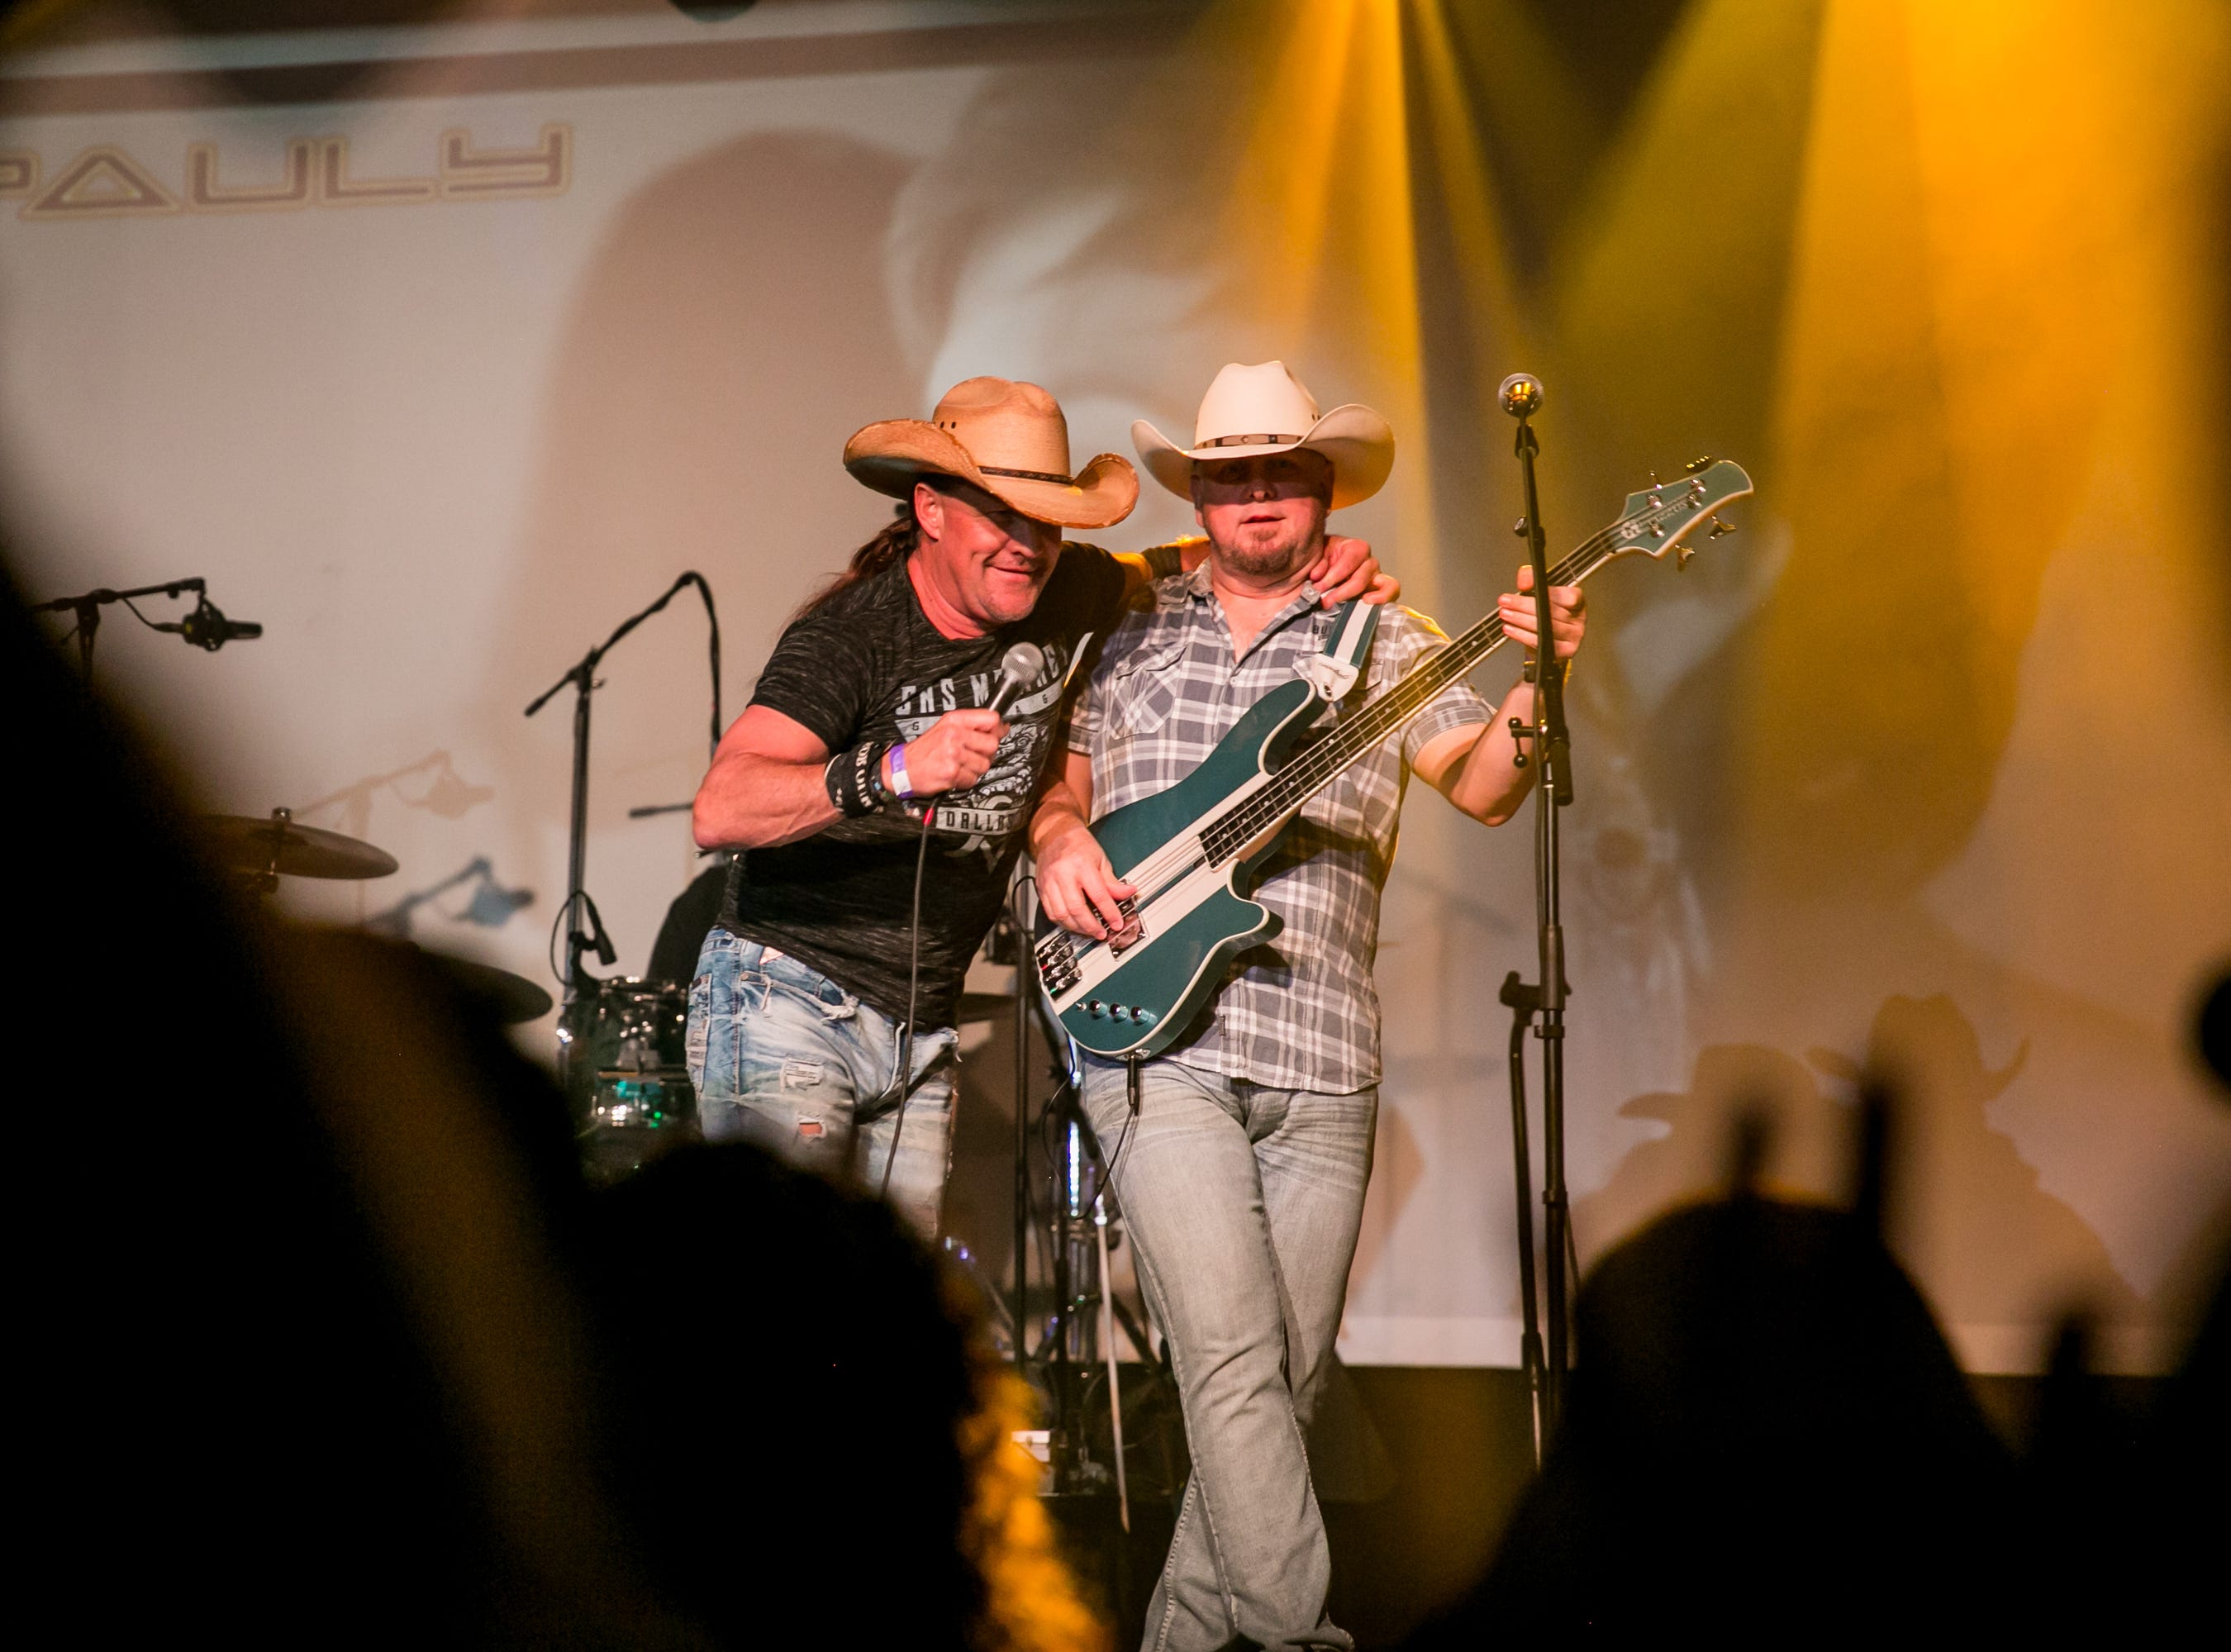 Mogollon performed the classics during the KMLE Country 90's Throwback at The Van Buren on Friday, Jan. 11, 2019.